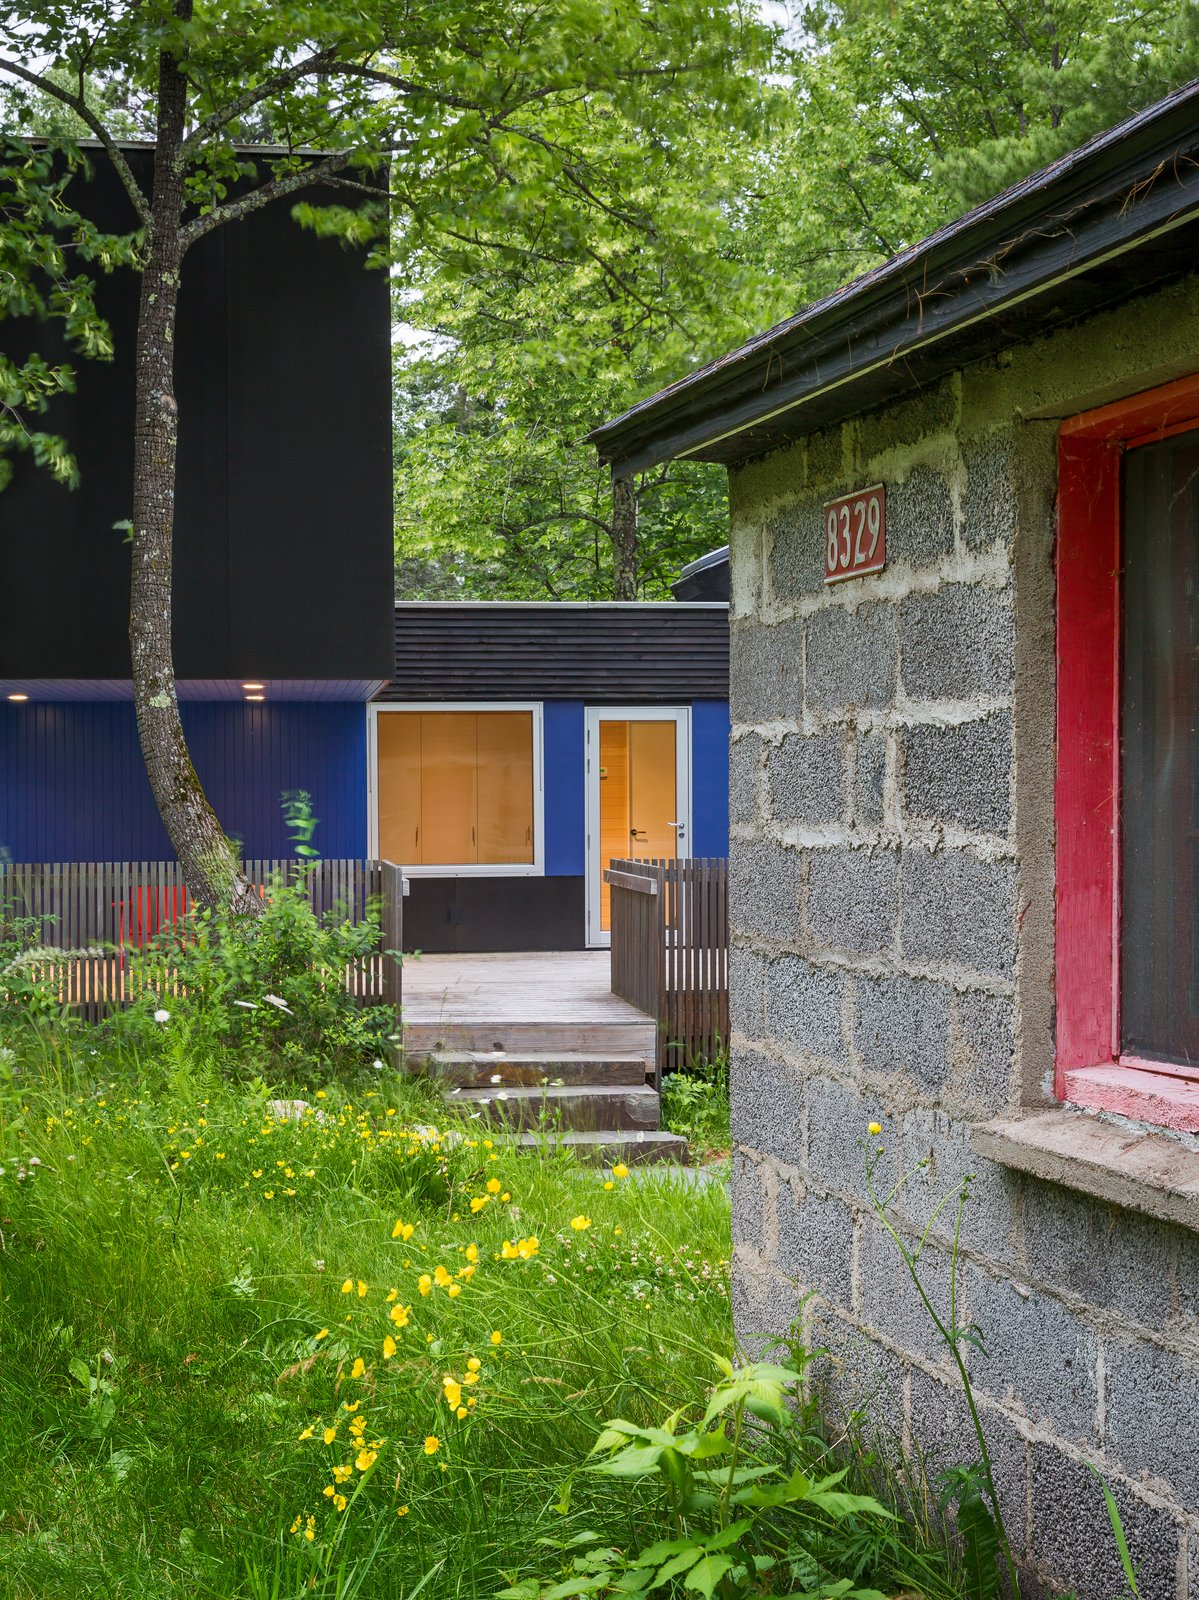 Outdoor, Vertical Fences, Wall, Shrubs, Grass, Side Yard, Wood Fences, Wall, Small Patio, Porch, Deck, Trees, and Large Patio, Porch, Deck Sections of the walls along the south-facing deck are painted bright blue to complement the sauna's pinkish-red door.  Best Photos from Two Rectangular Volumes Unite to Form a Colorful Lakeside Cabin